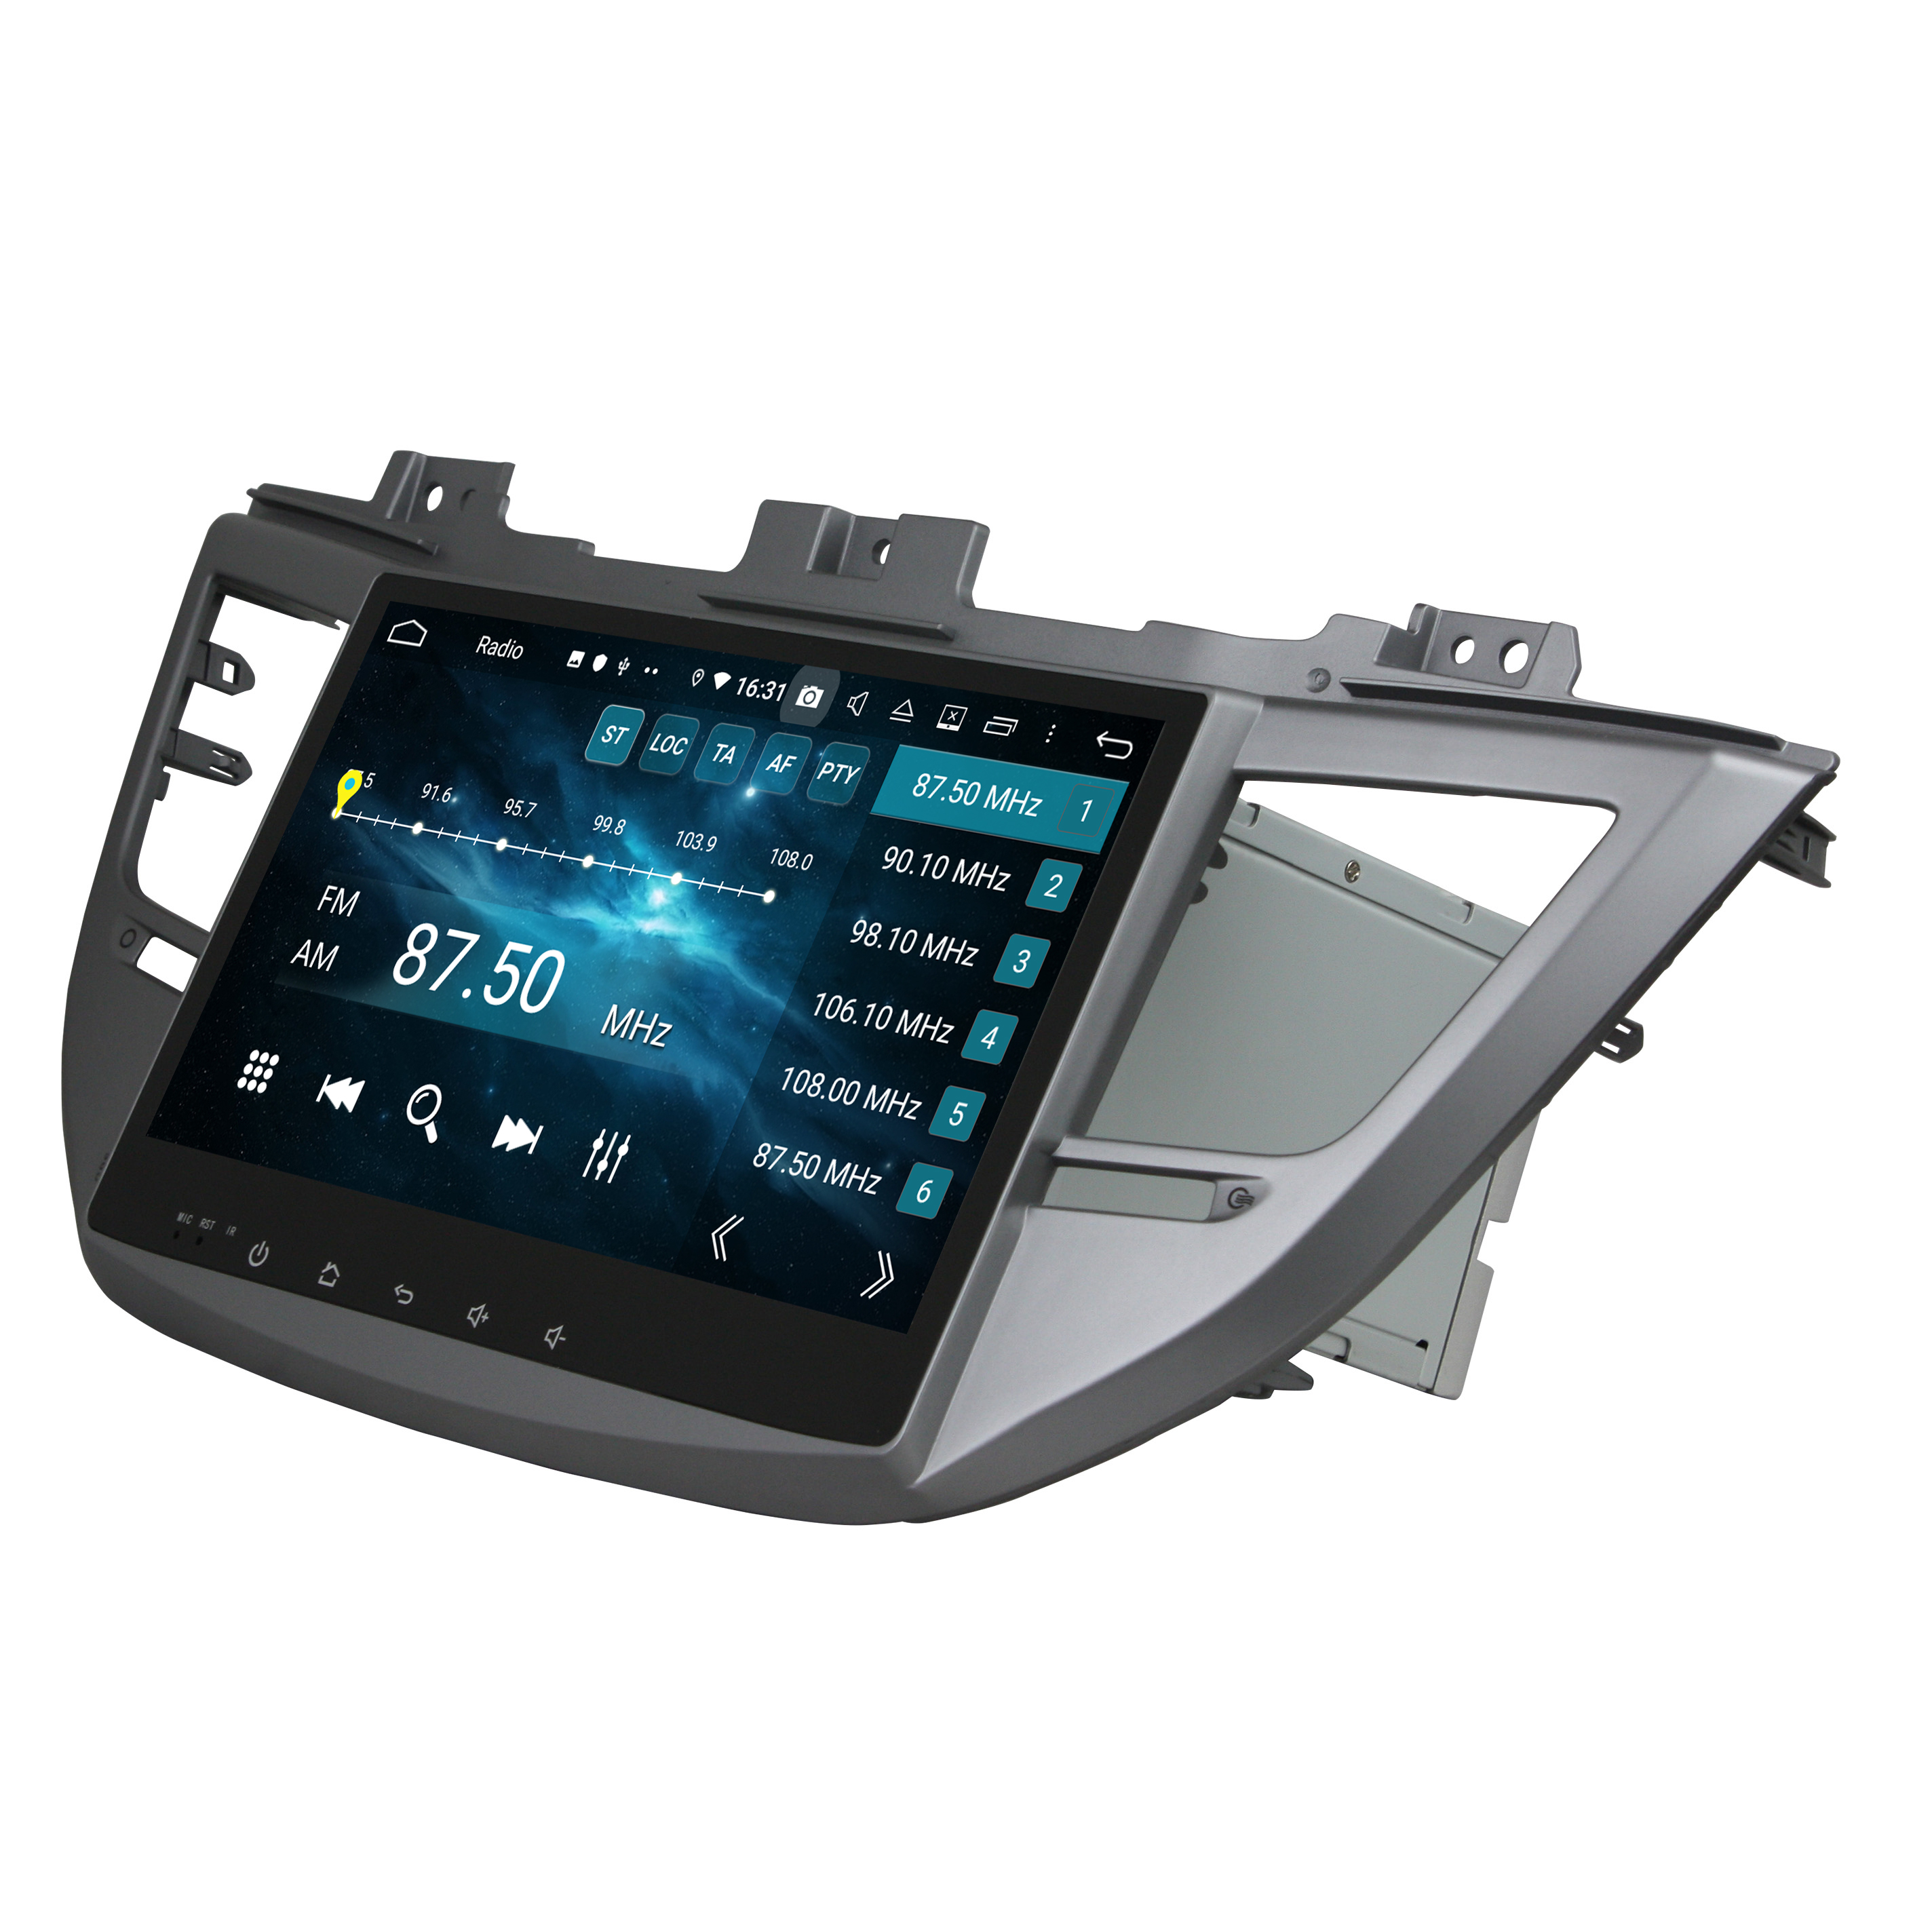 DSP 4GB RAM PX6 10.1 Android 9.0 Car Radio DVD GPS for Hyundai IX35 Tucson 2015 2016 2017 2018 Bluetooth 5.0 WIFI Easy Connect image